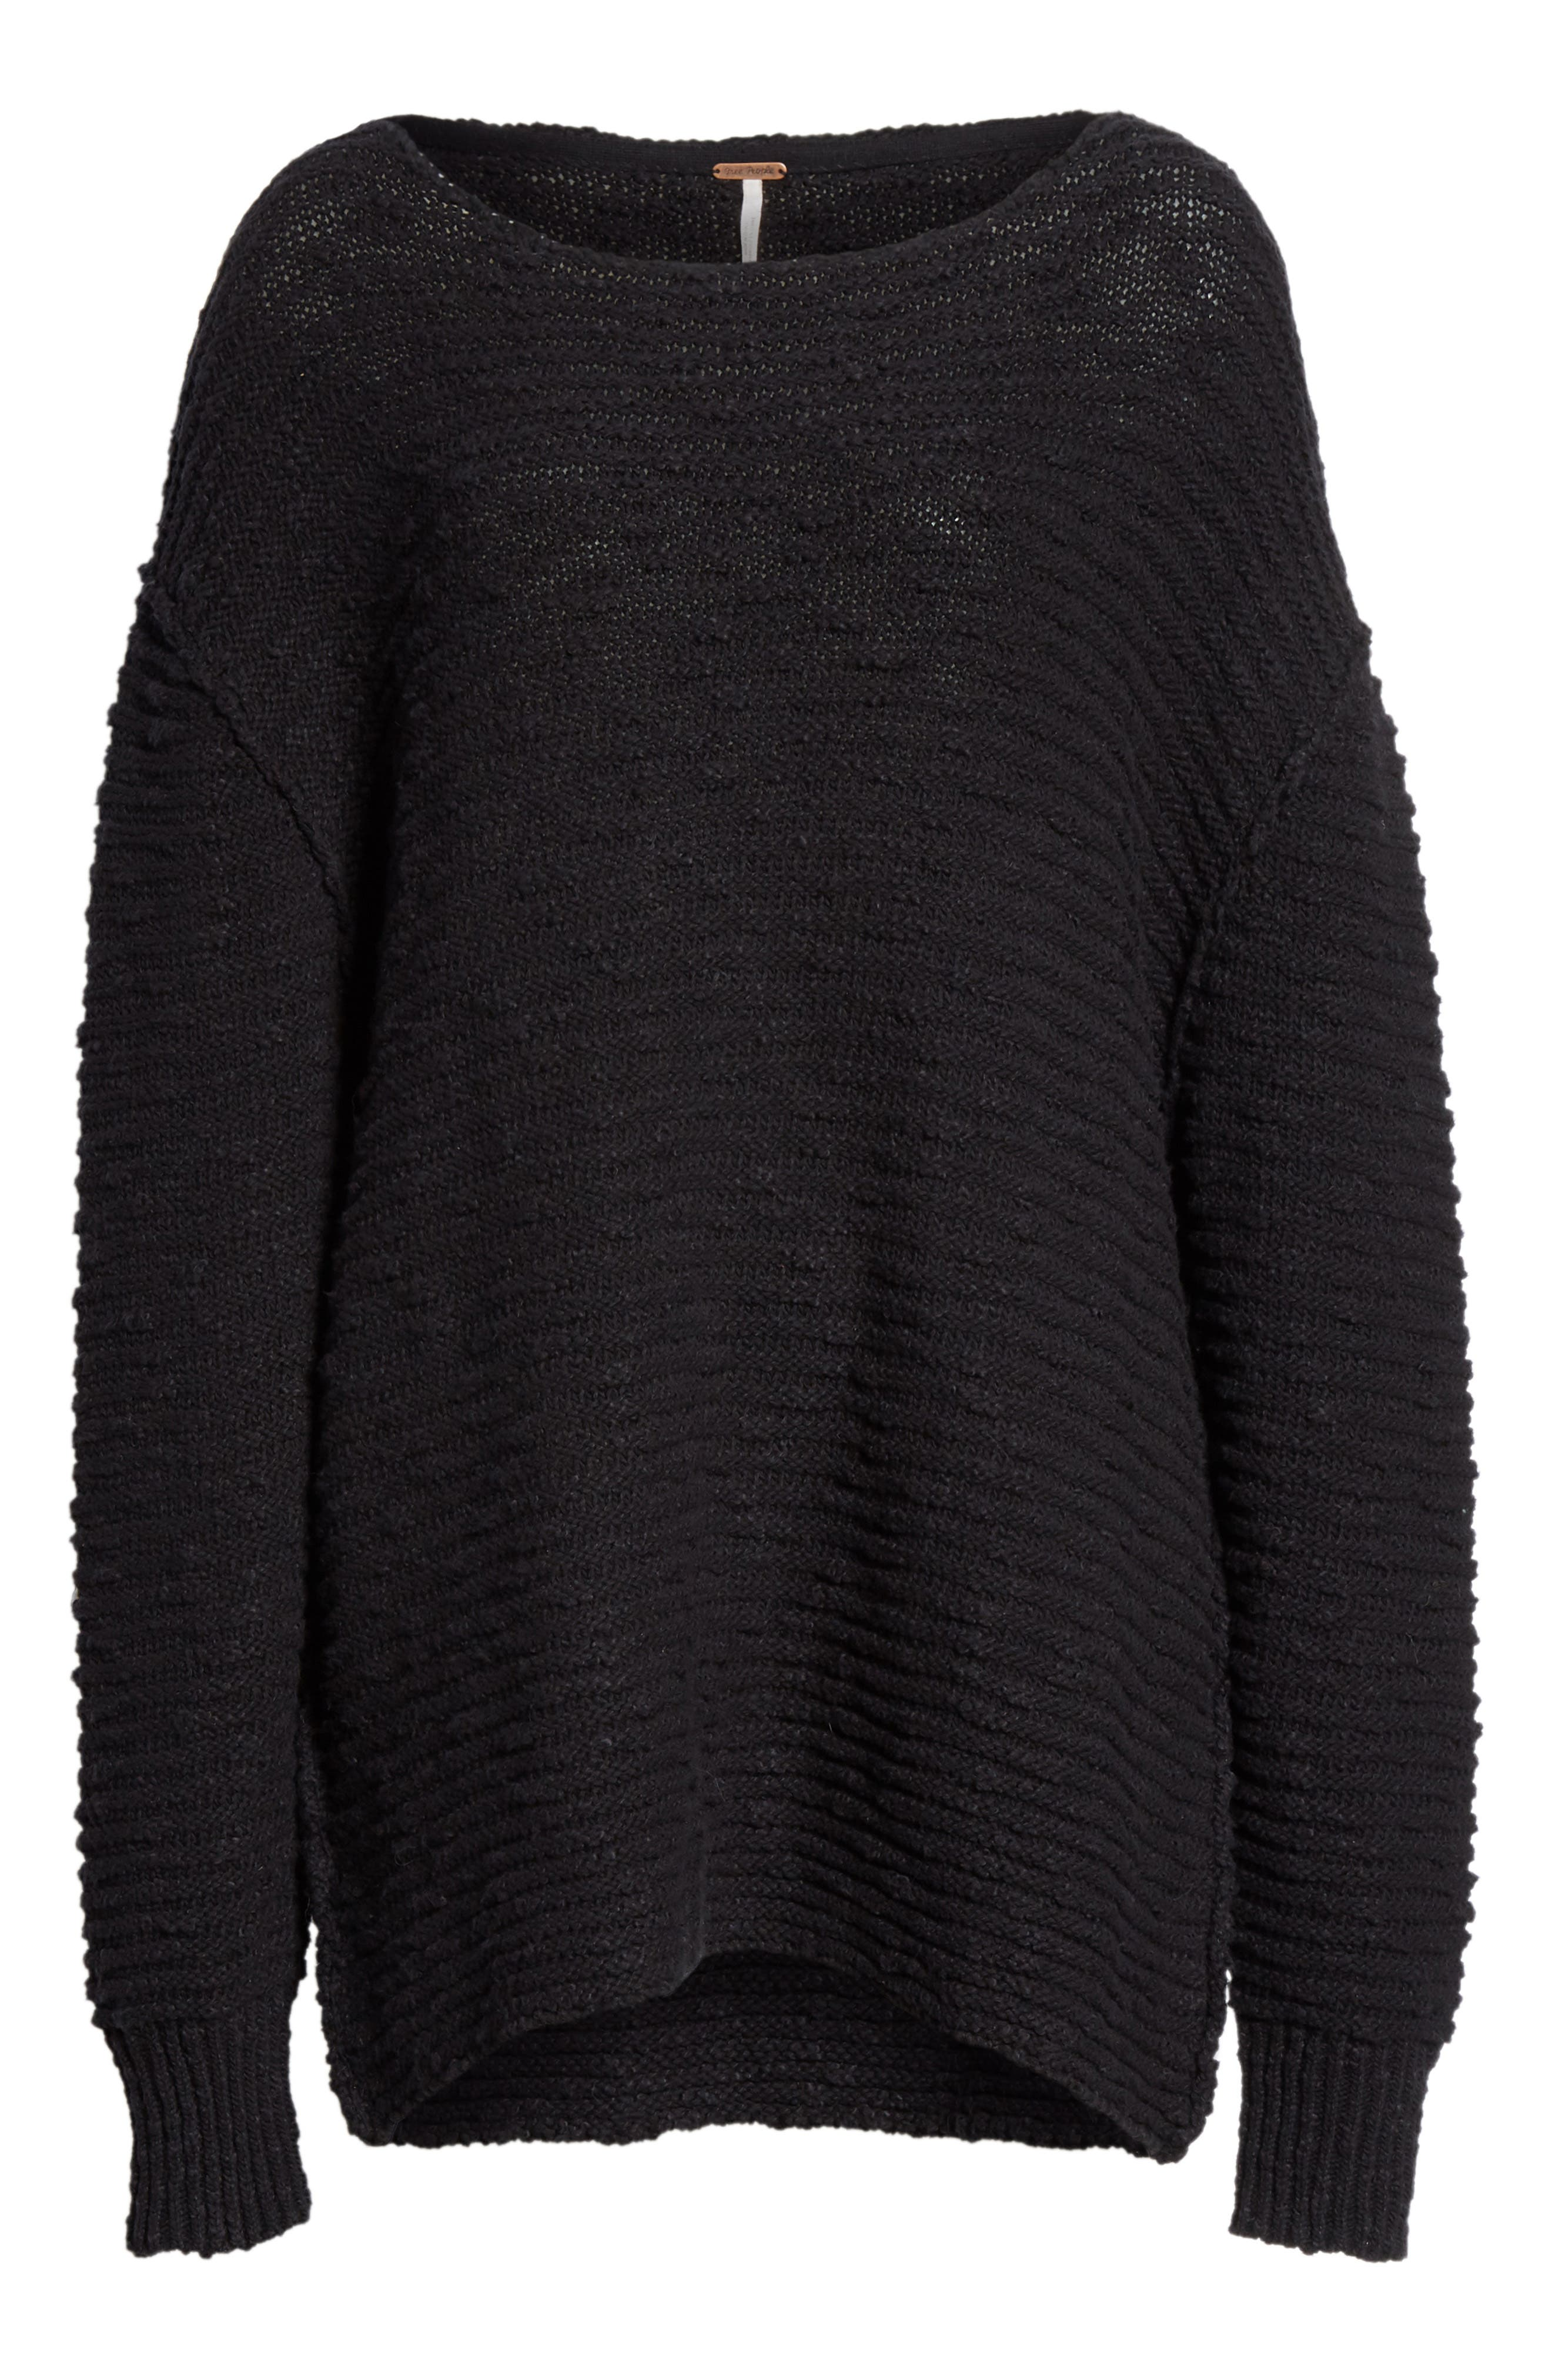 Menace Solid Tunic Sweater,                             Alternate thumbnail 6, color,                             001